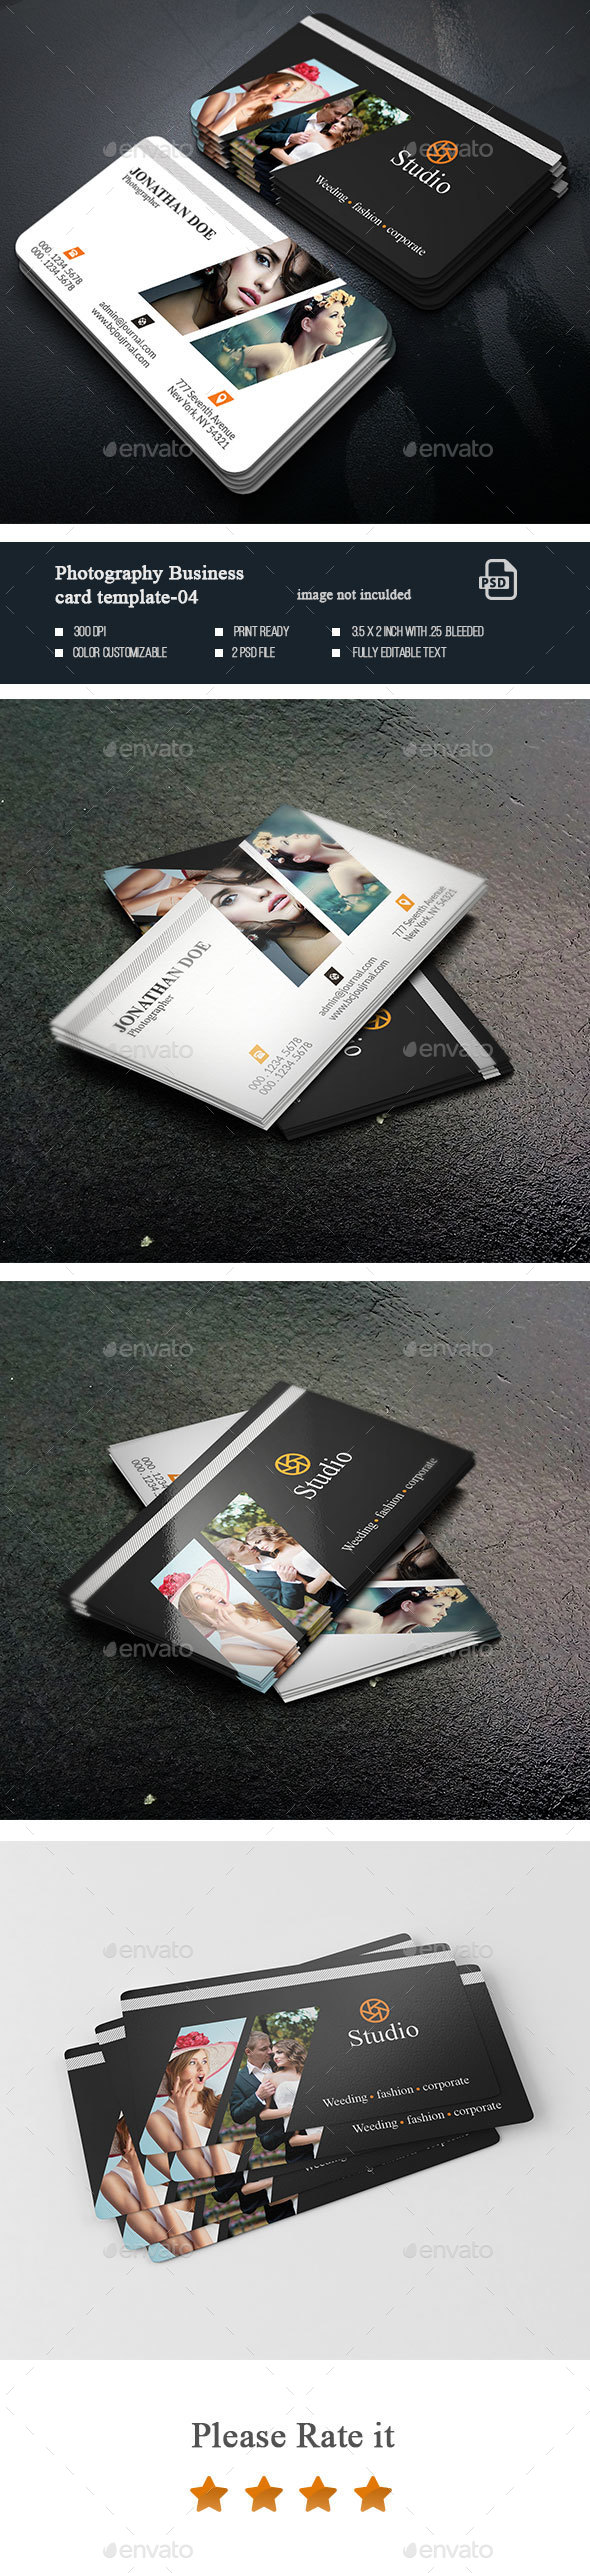 Photography  Business Card-04 - Business Cards Print Templates